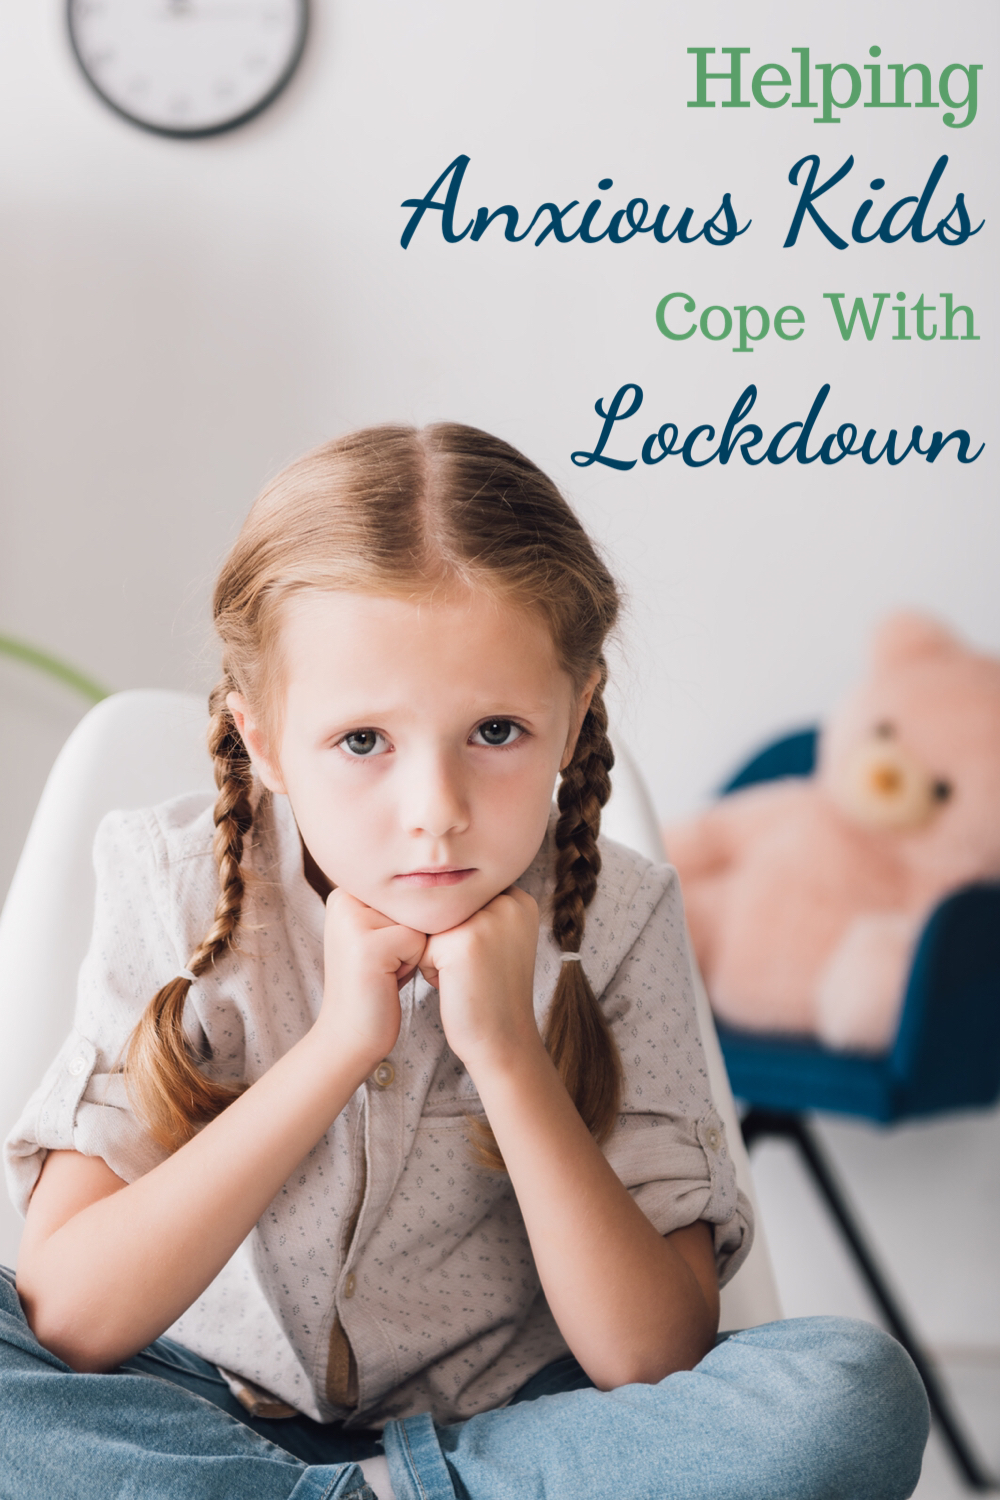 Helping anxious kids cope with lockdown